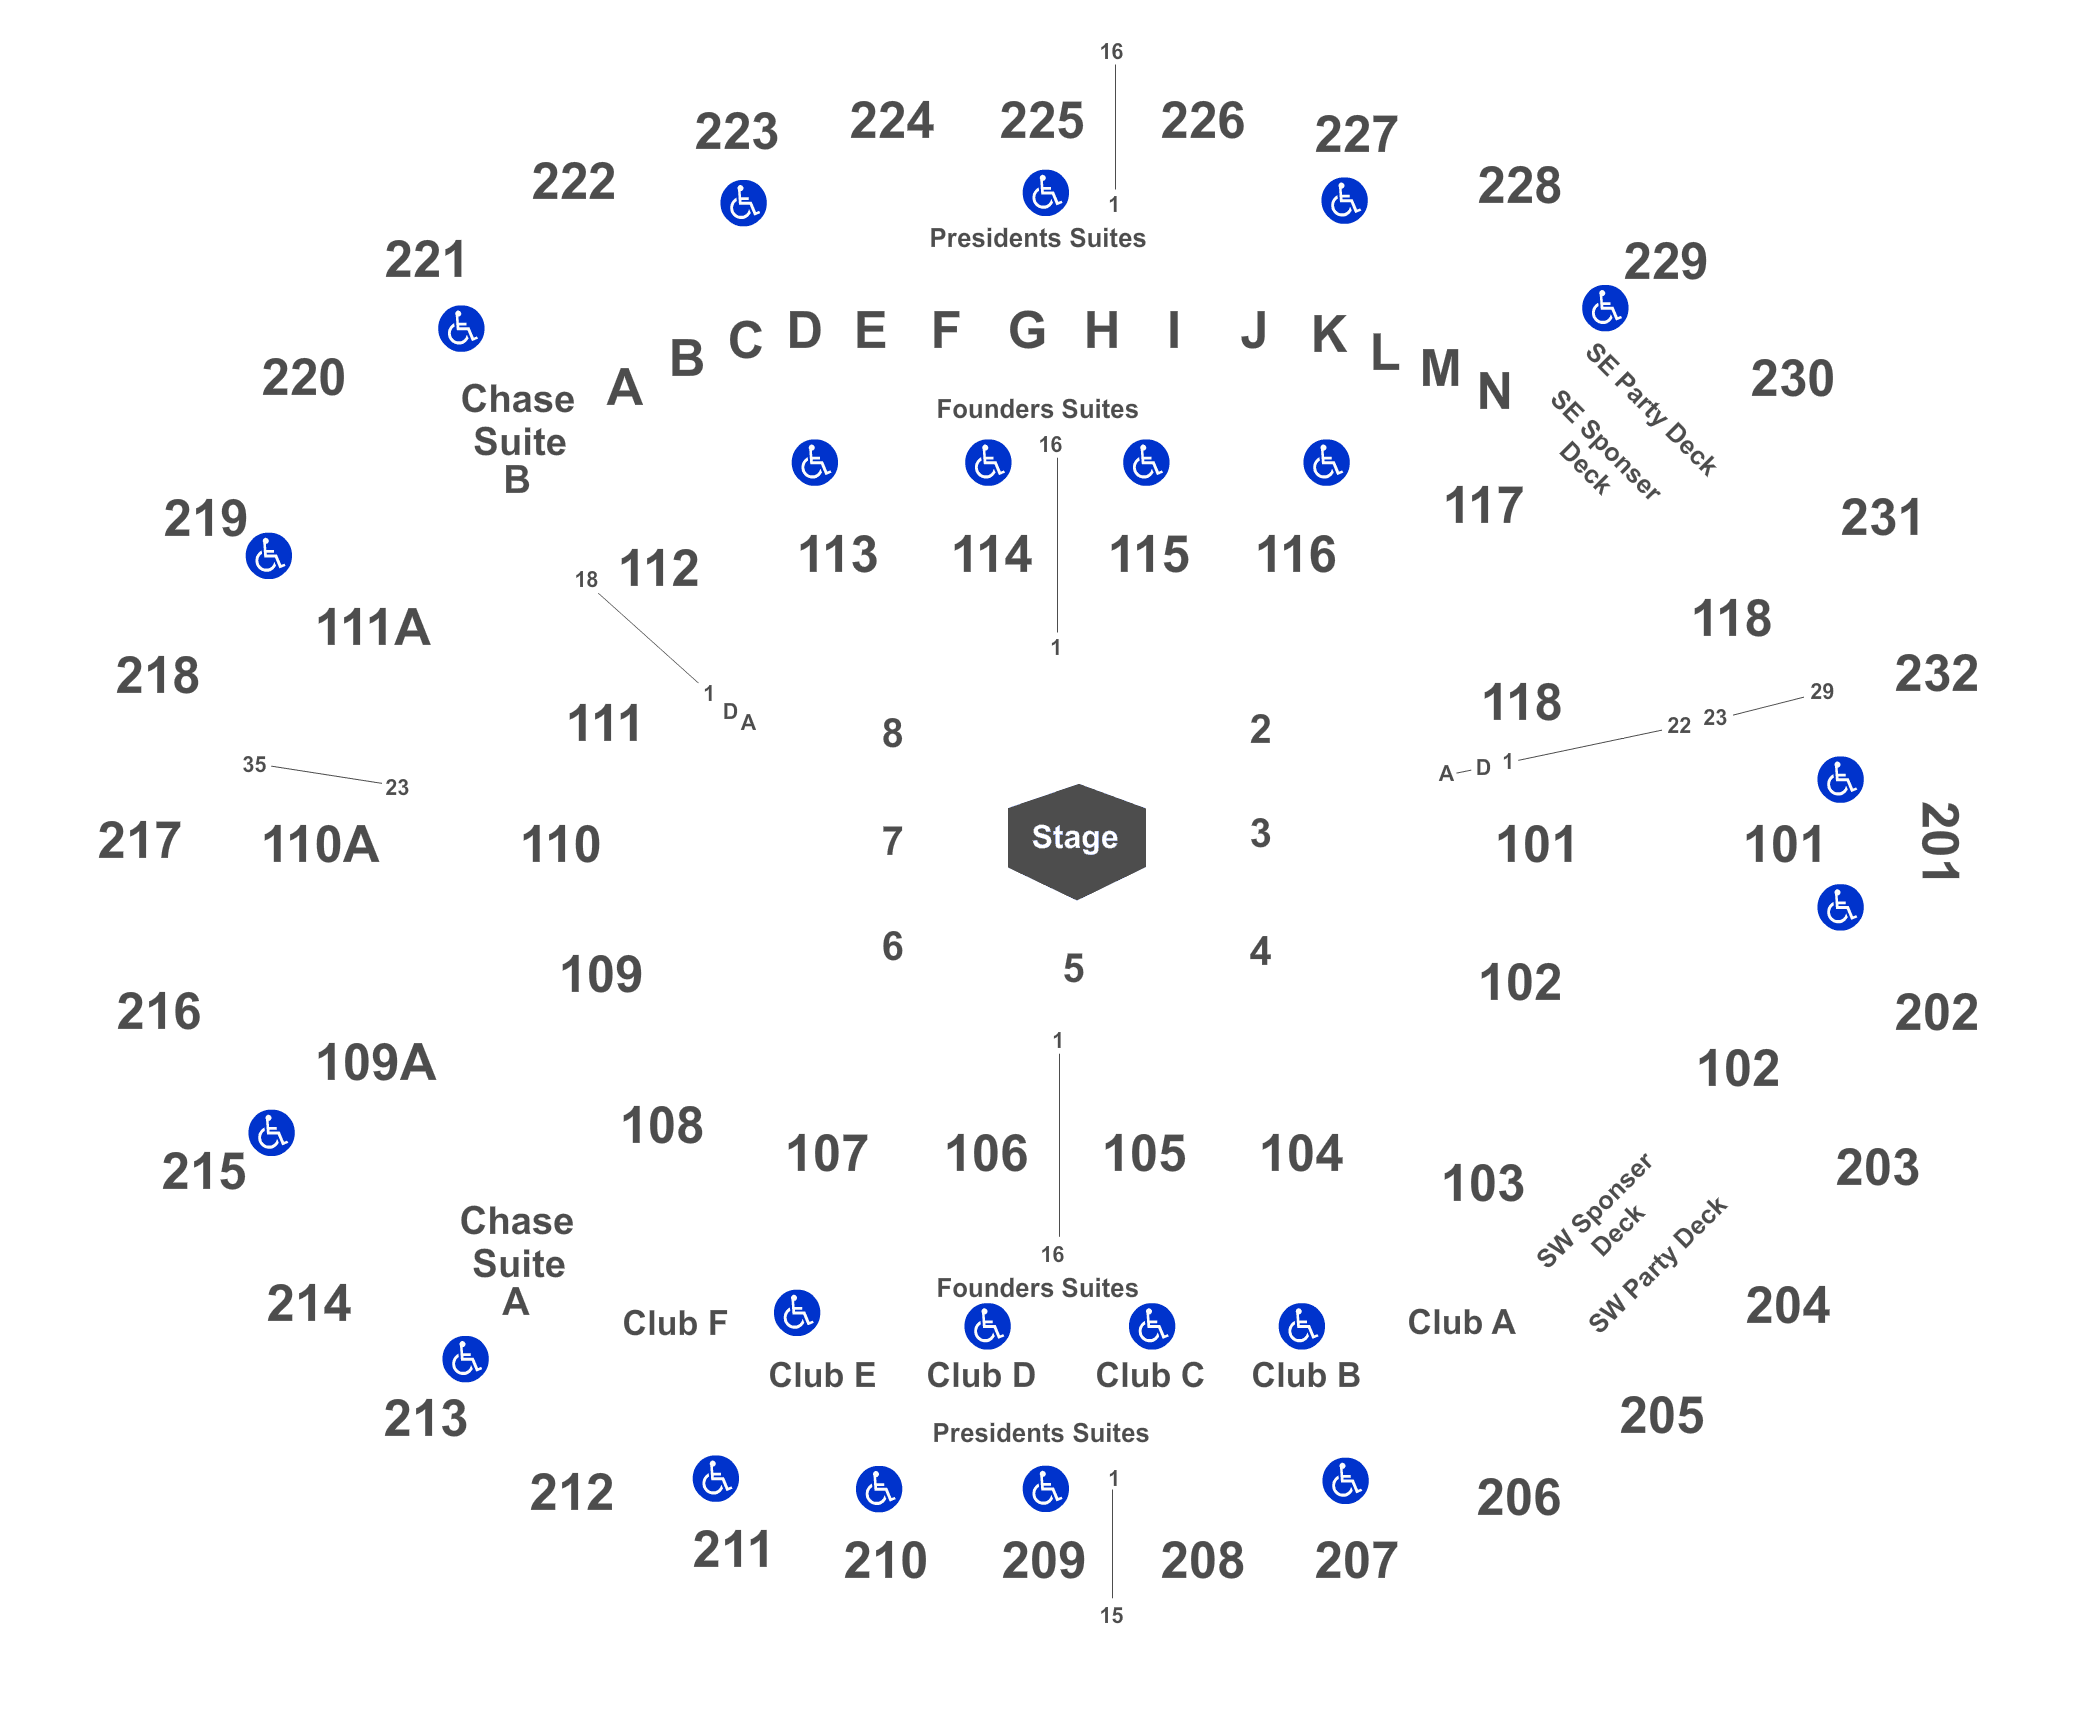 ufc fight night tickets amway center cheaptickets